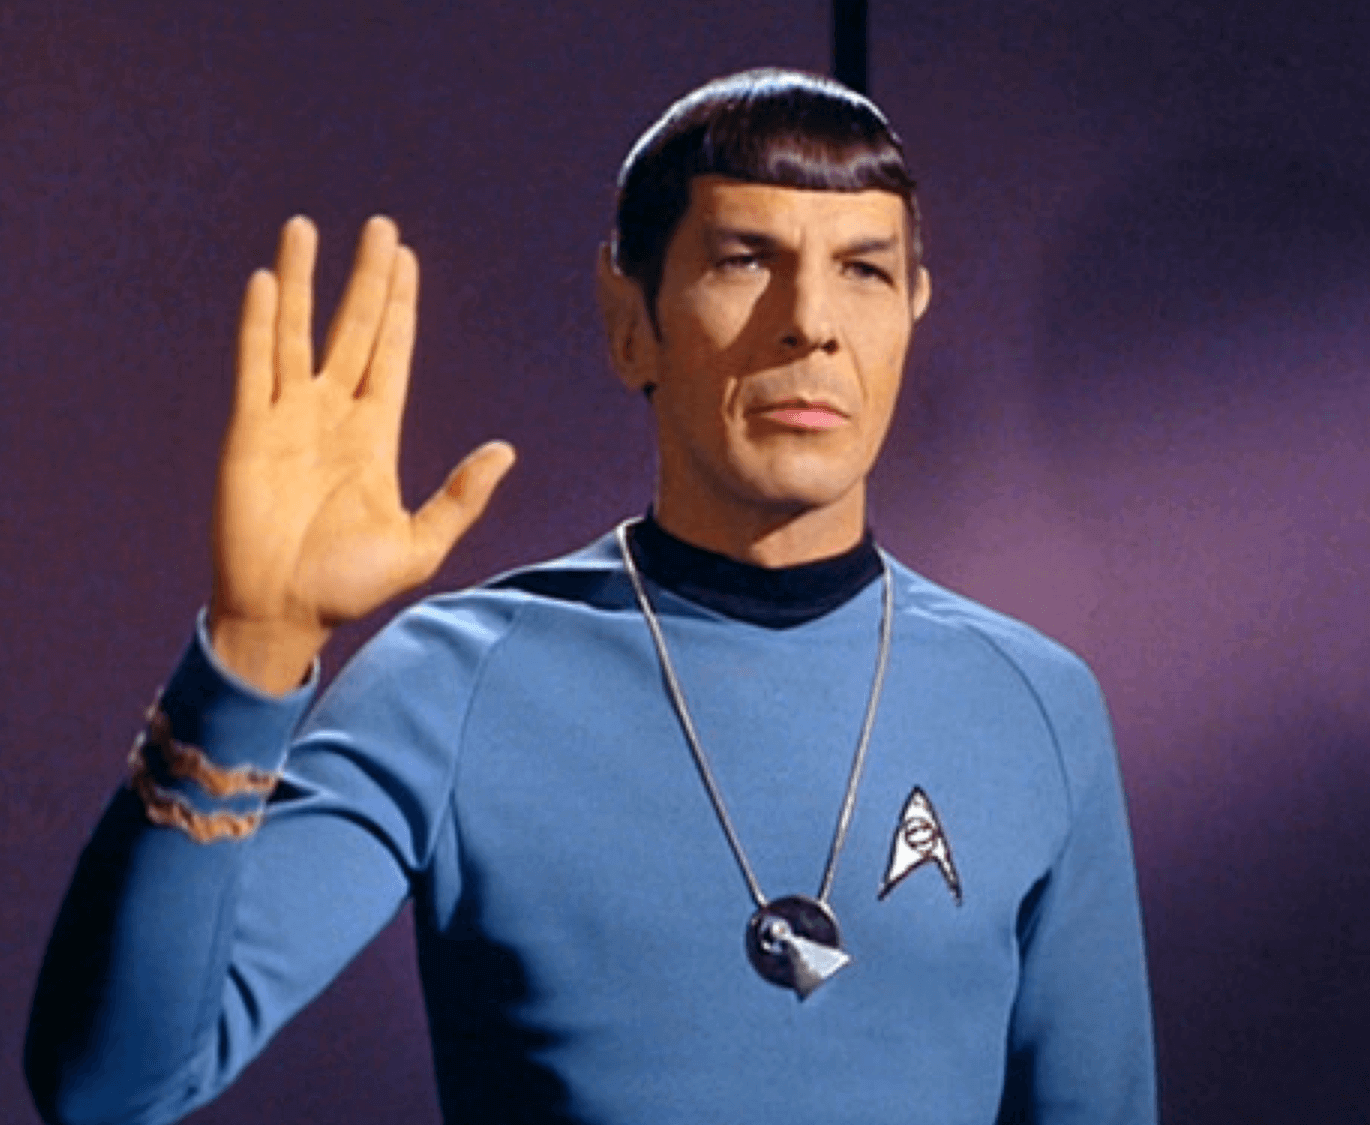 https://geneticliteracyproject.org/wp-content/uploads/2017/01/Leonard-Nimoy.png